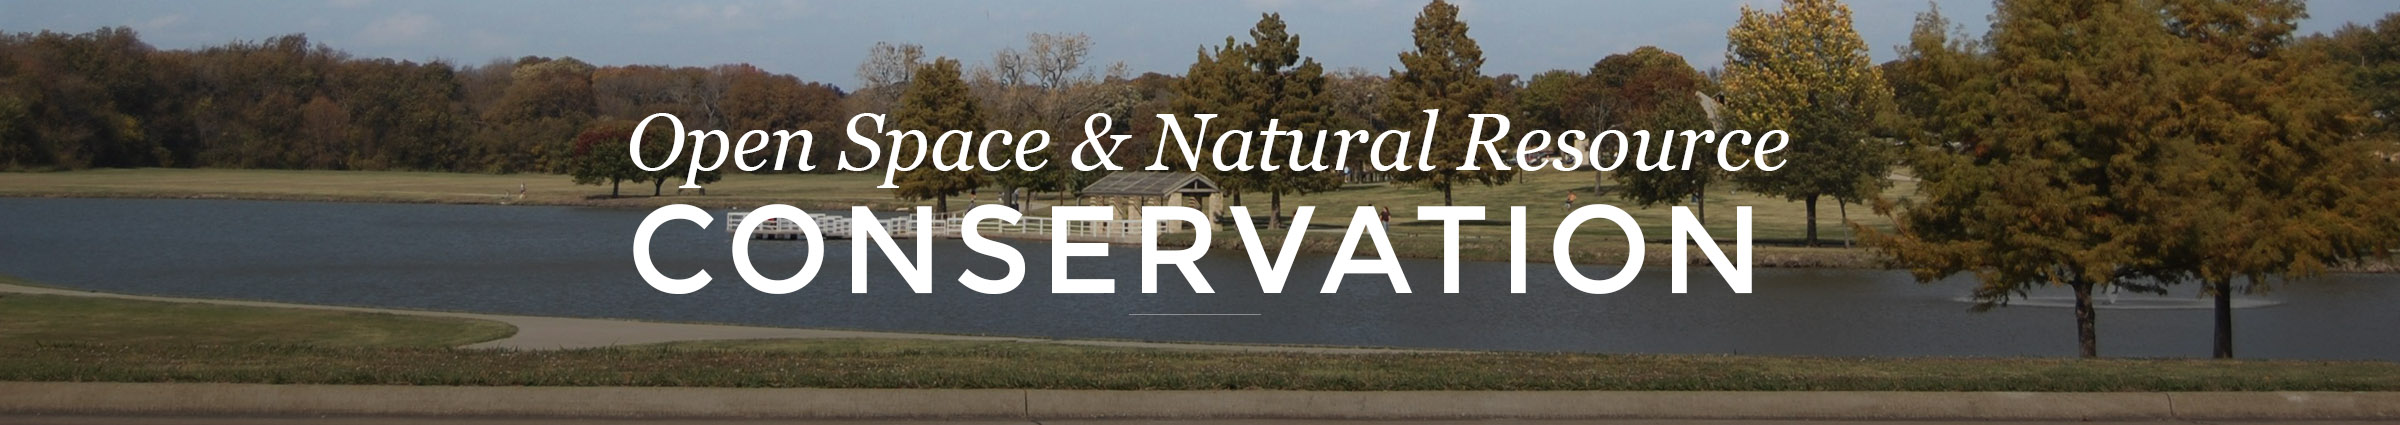 Open Space and Natural Resource Conservation